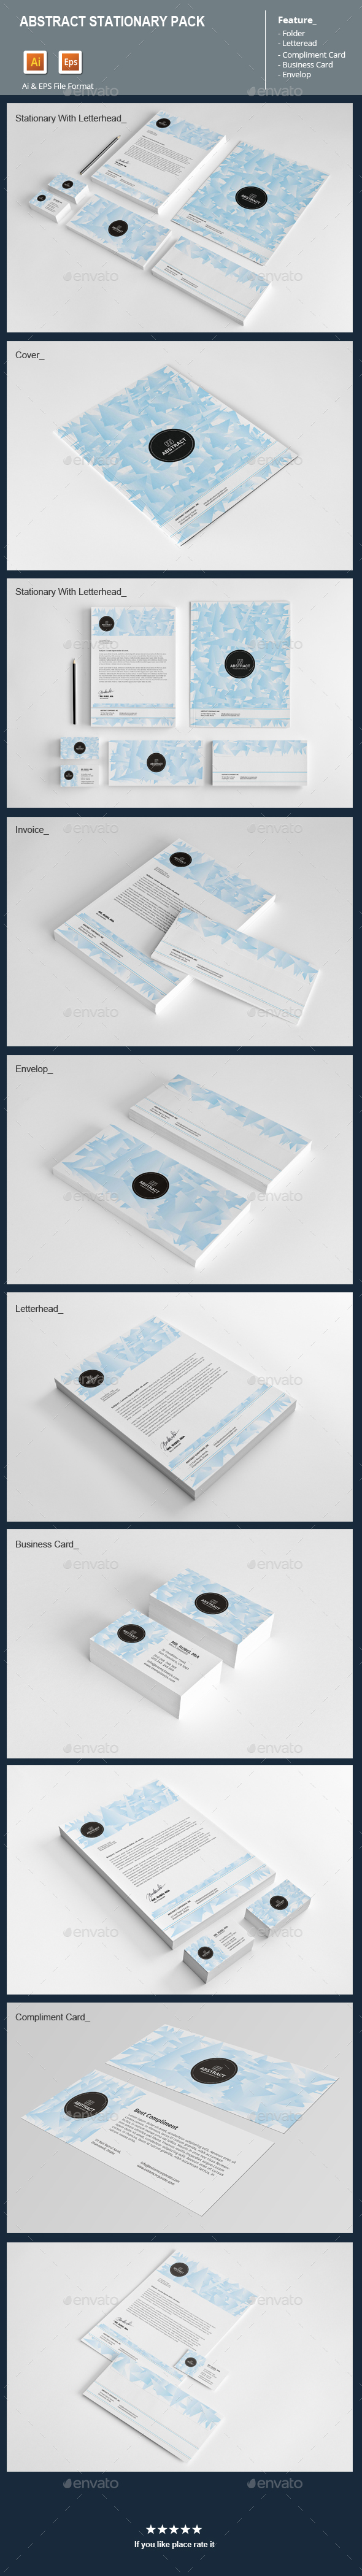 Abstract Stationary Pack - Stationery Print Templates